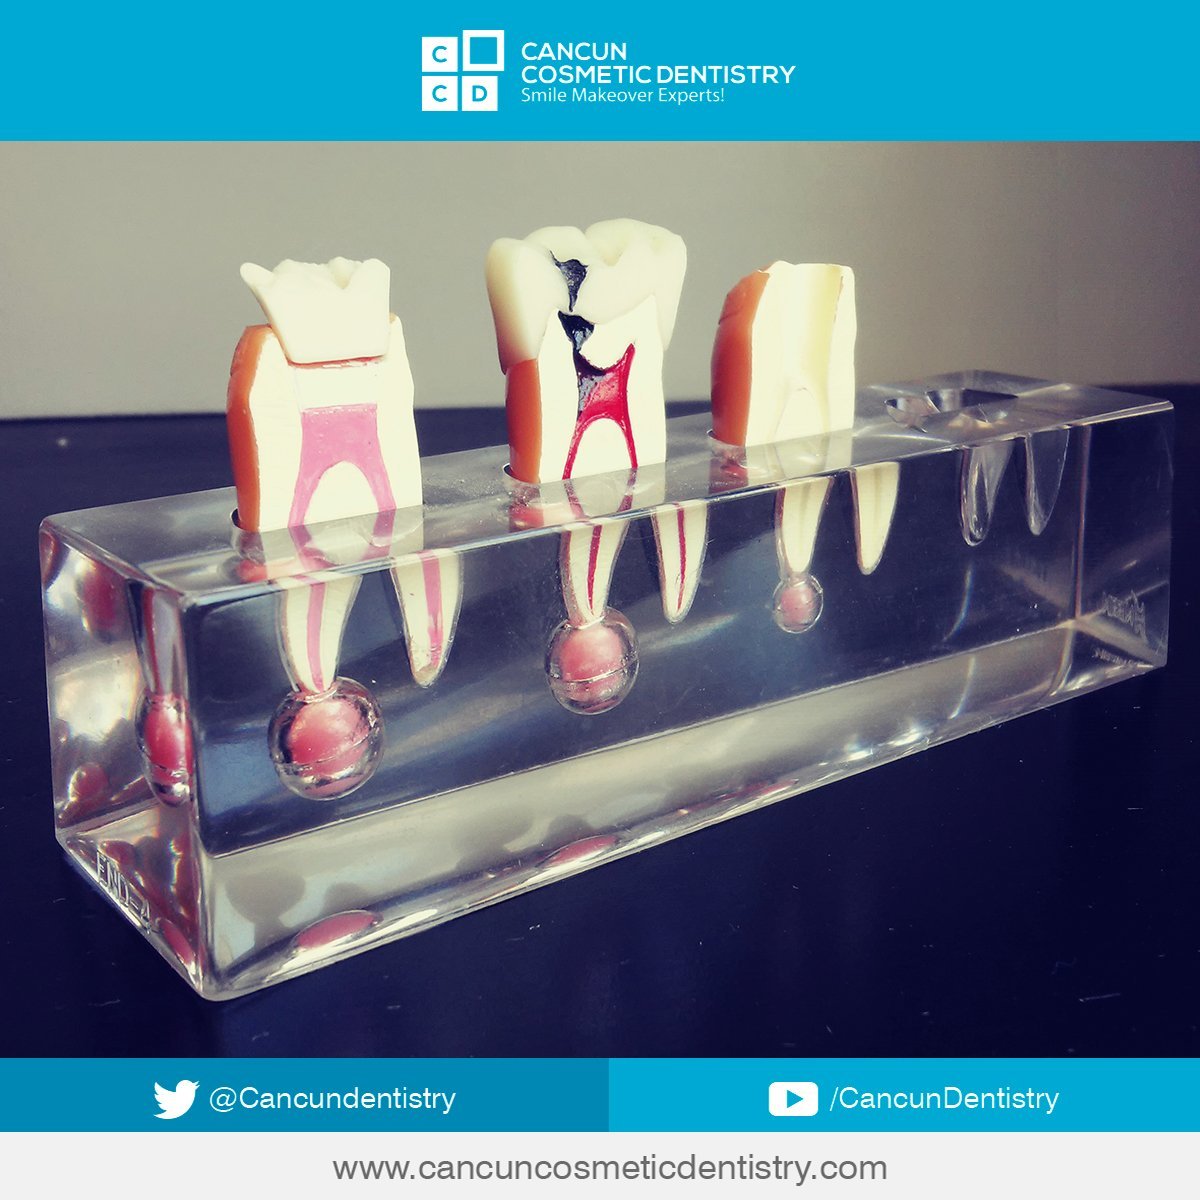 Cancun Dentistry Cancundentistry Twitter # Muebles Dipay Cancun